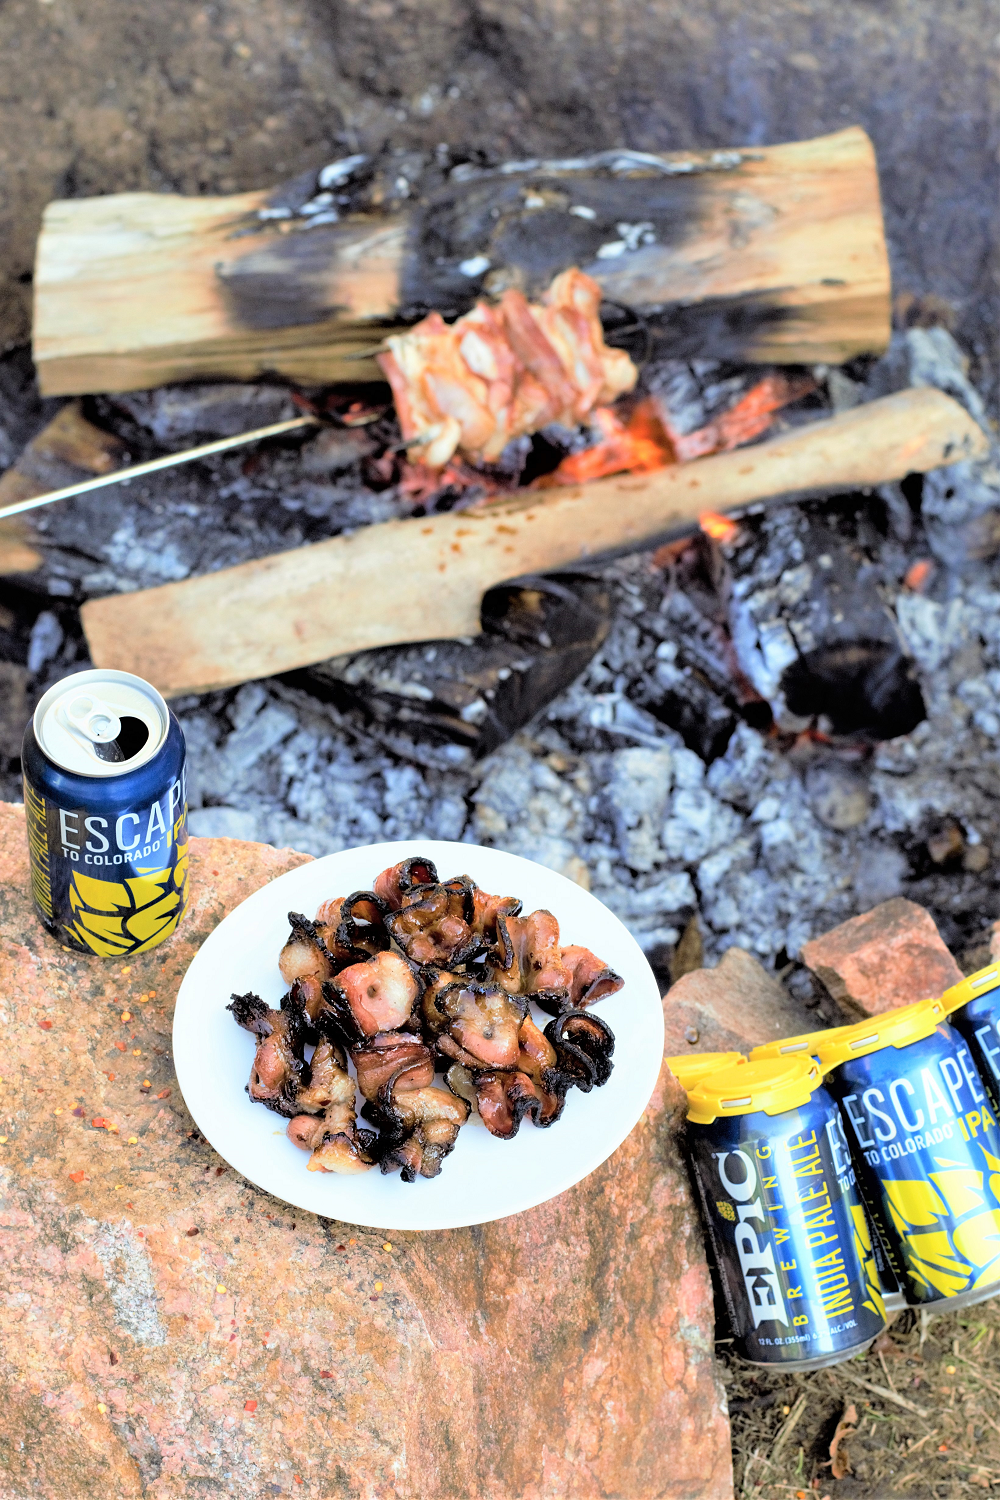 Thick slices of bacon are slathered with a spicy, sugary beer sauce and roasted over a smoky campfire for breakfast heaven!